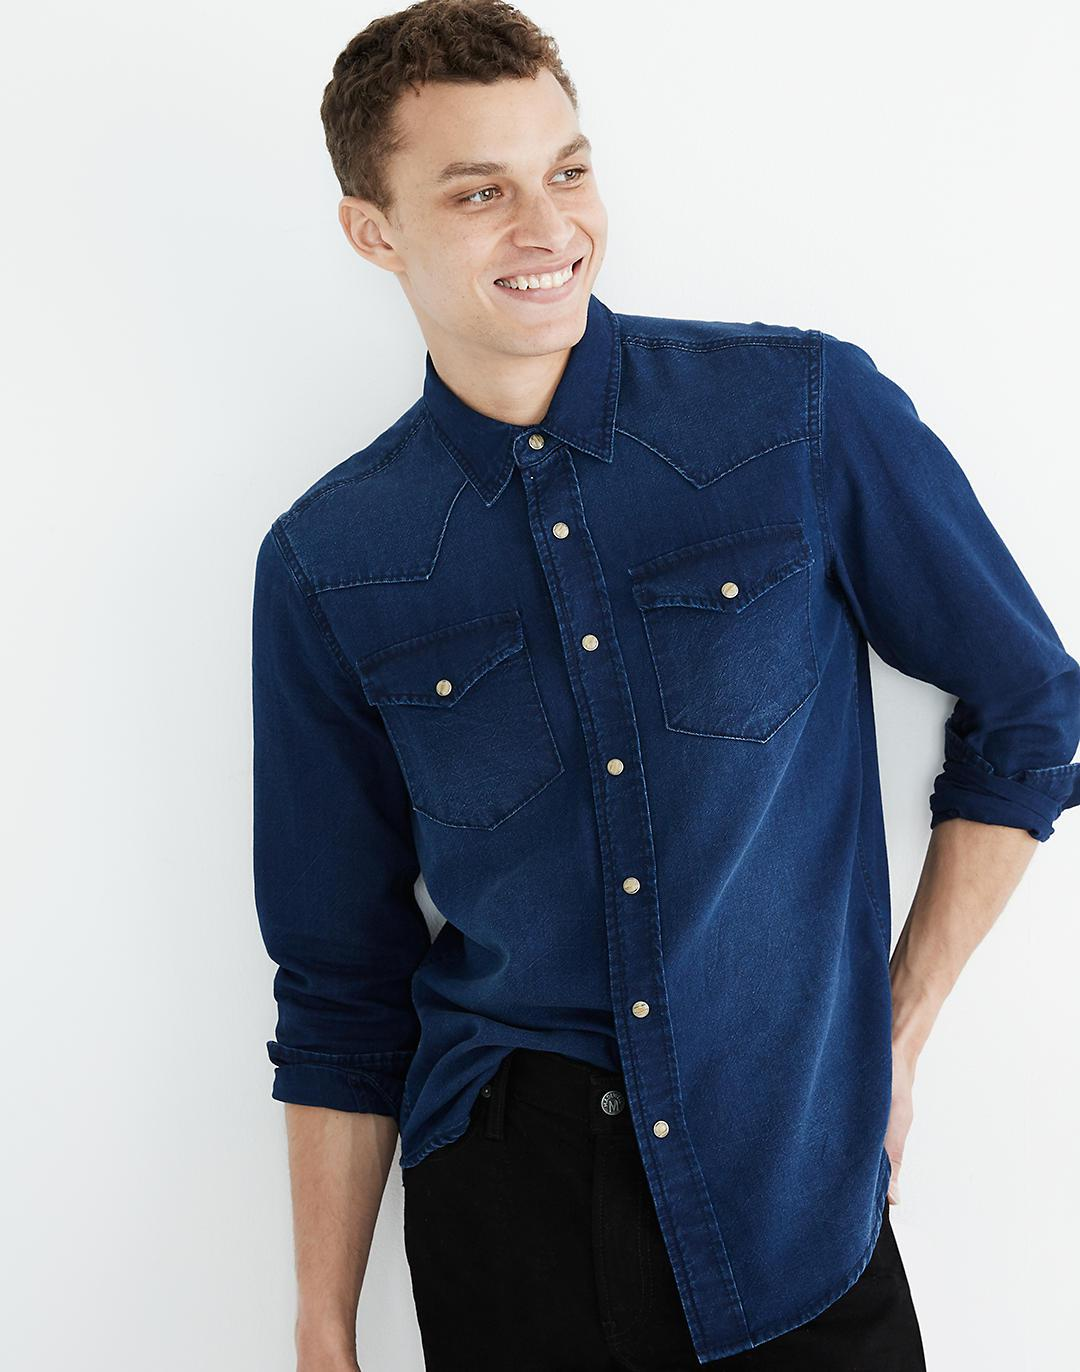 Western Perfect Shirt in Dryden Wash